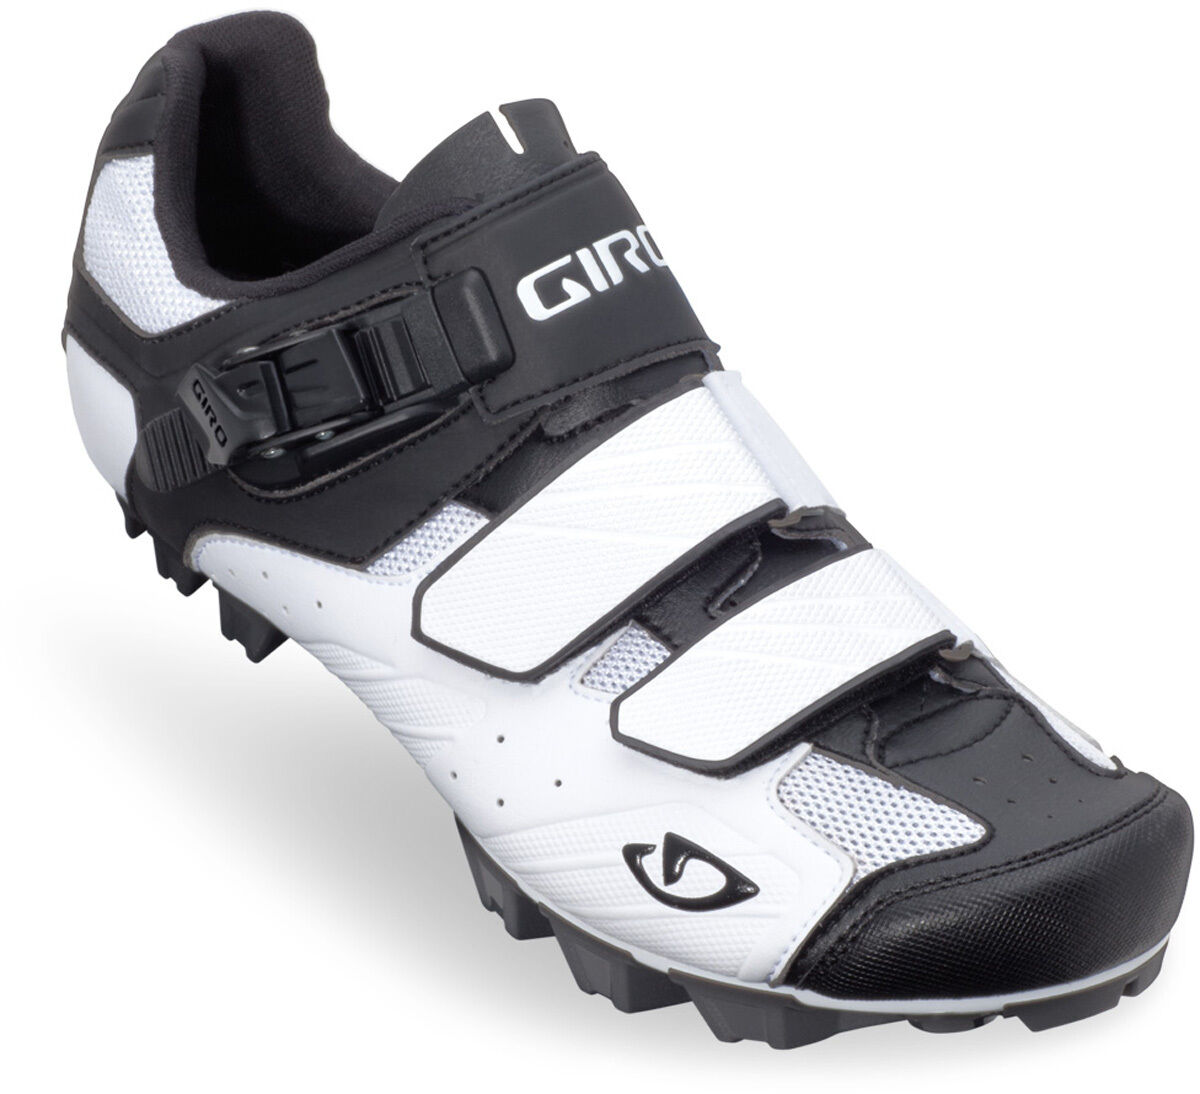 shoes GIRO MTB PRIVATER mtb shoes